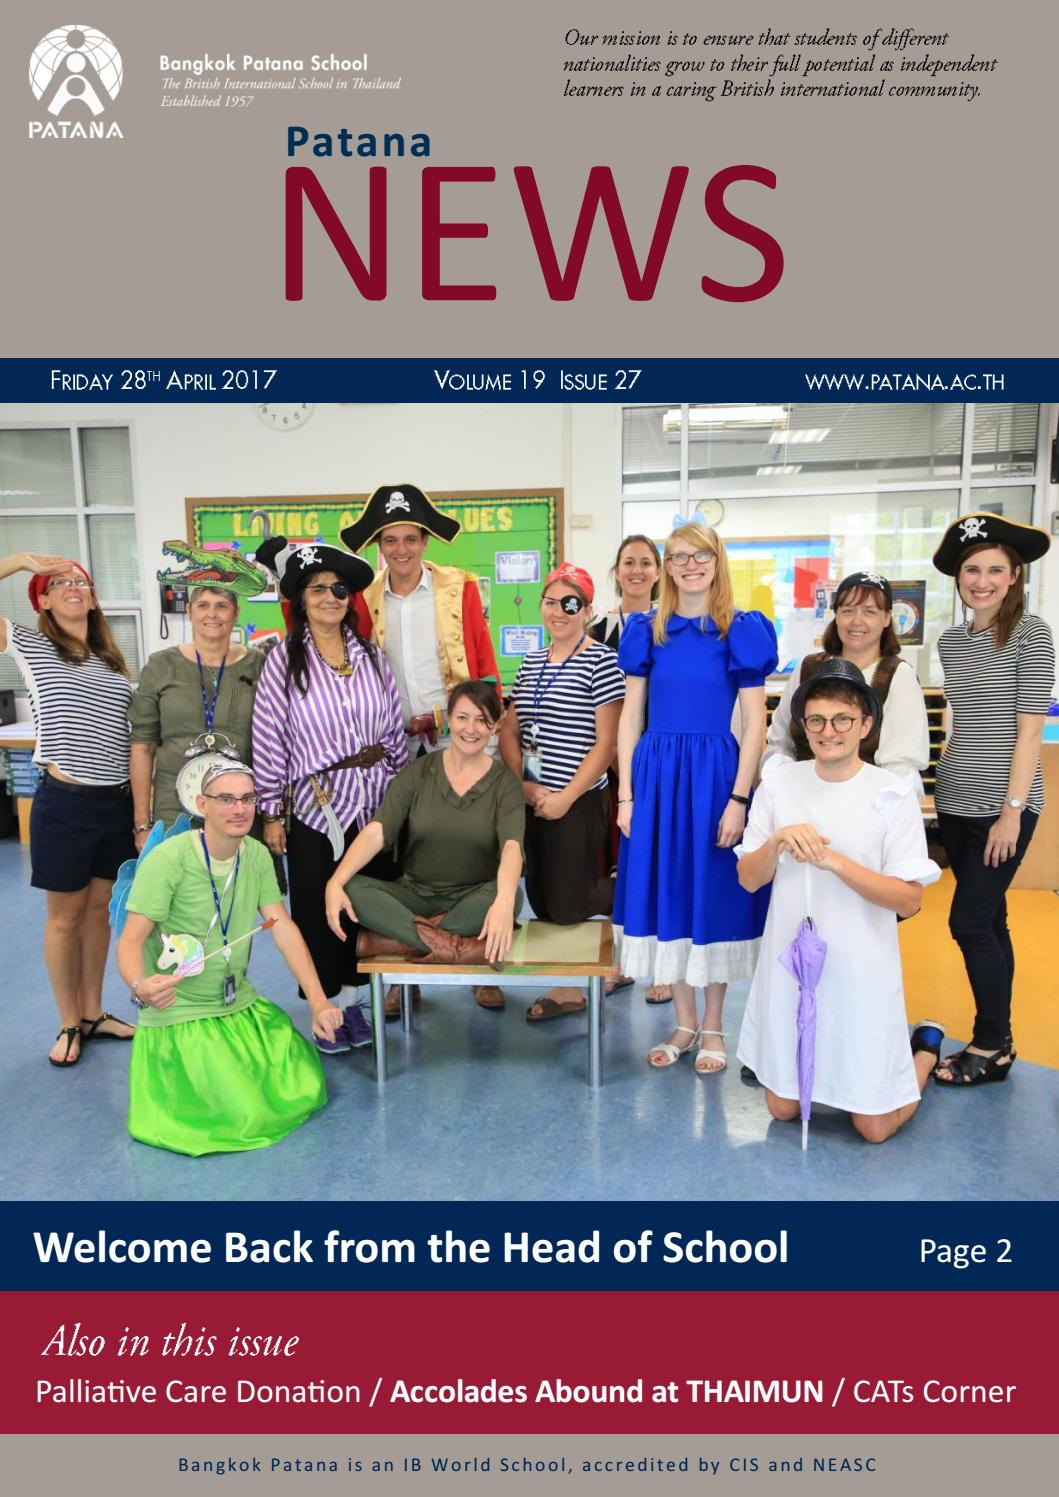 Patana News Volume 19 Issue 27 By Bangkok Patana School Issuu